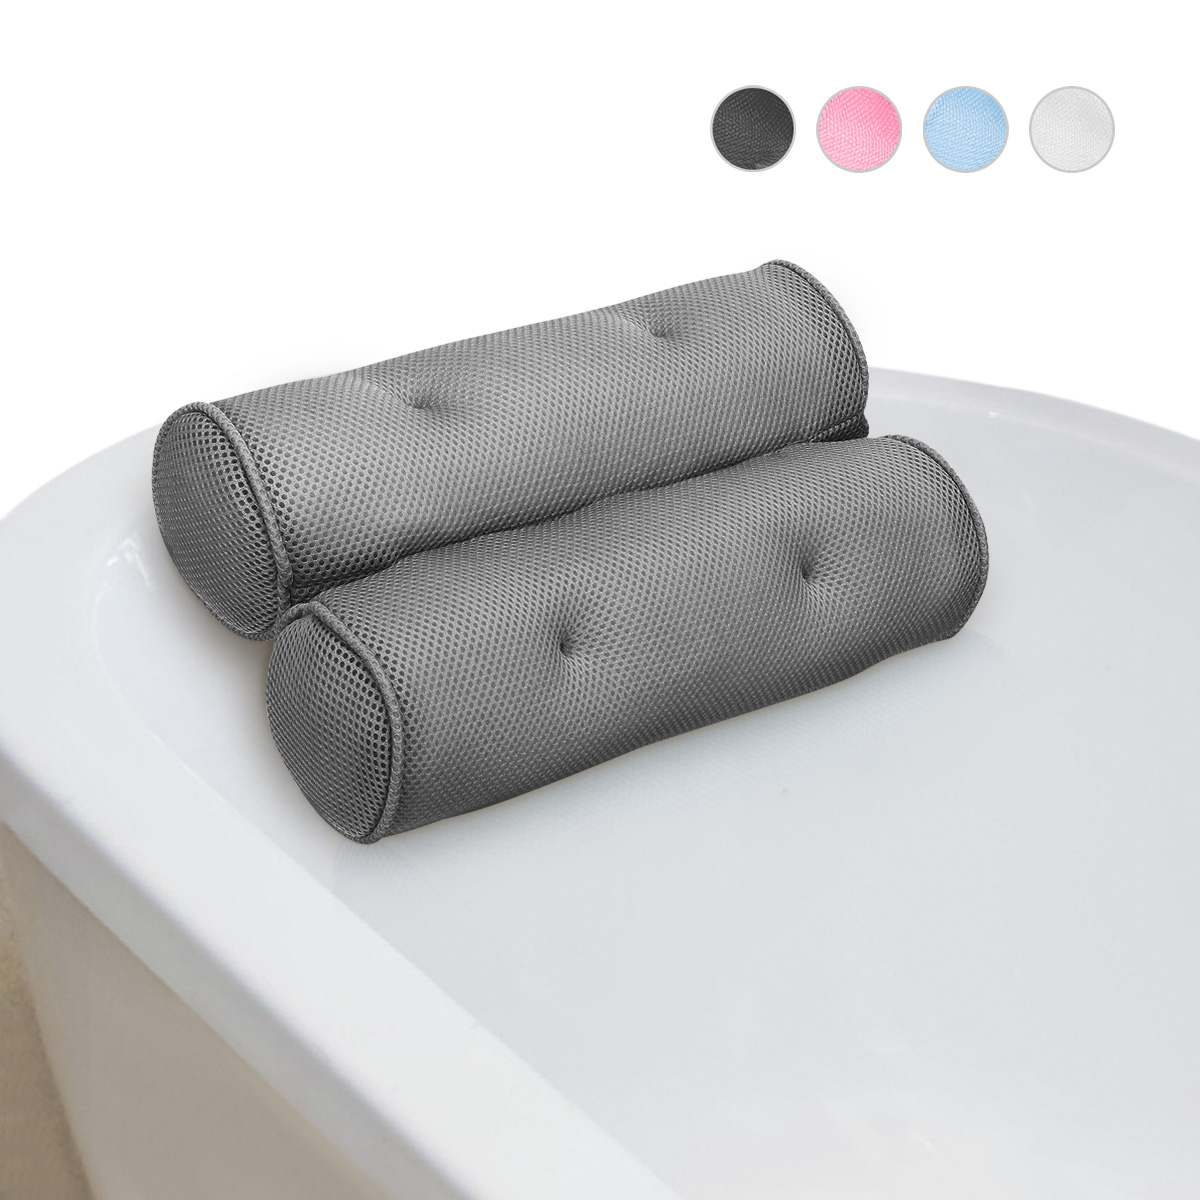 4 Colors Bath Pillow with Suction Cups Neck Support Bathtub Cushion Breathable 3D Mesh Spa Pillow Tub Bathroom Accersory